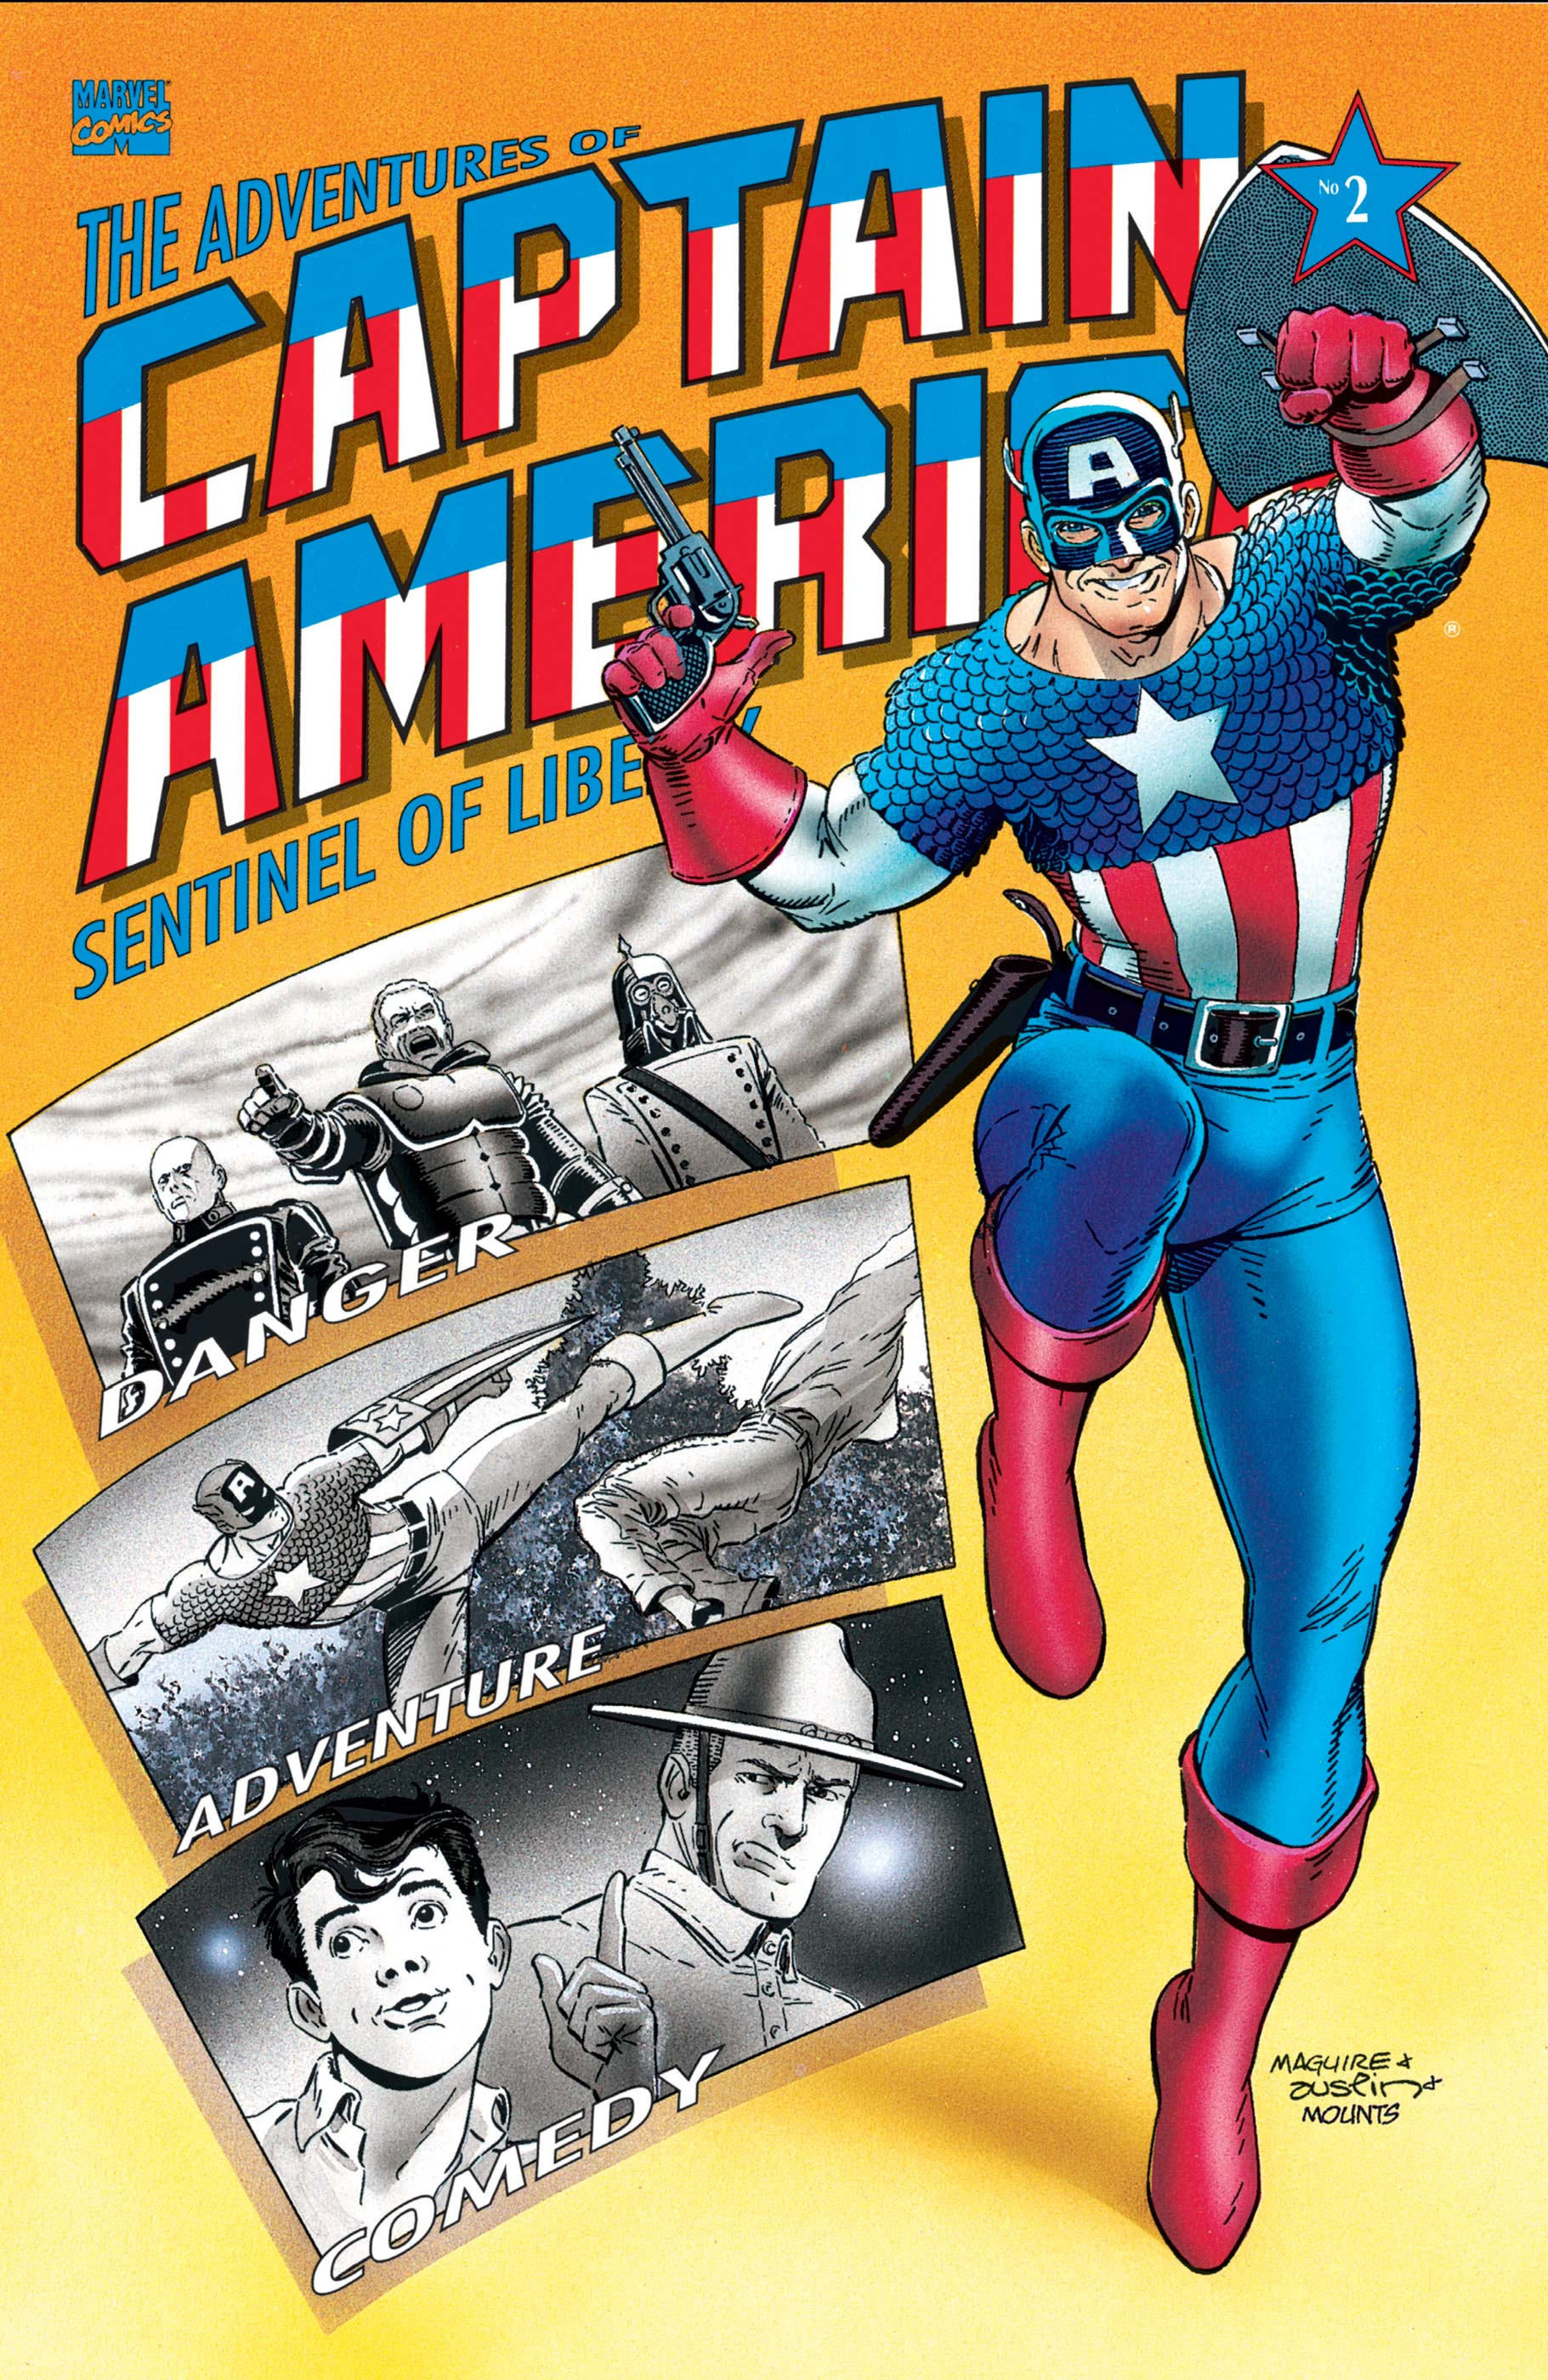 Adventures of Captain America (1991) #2